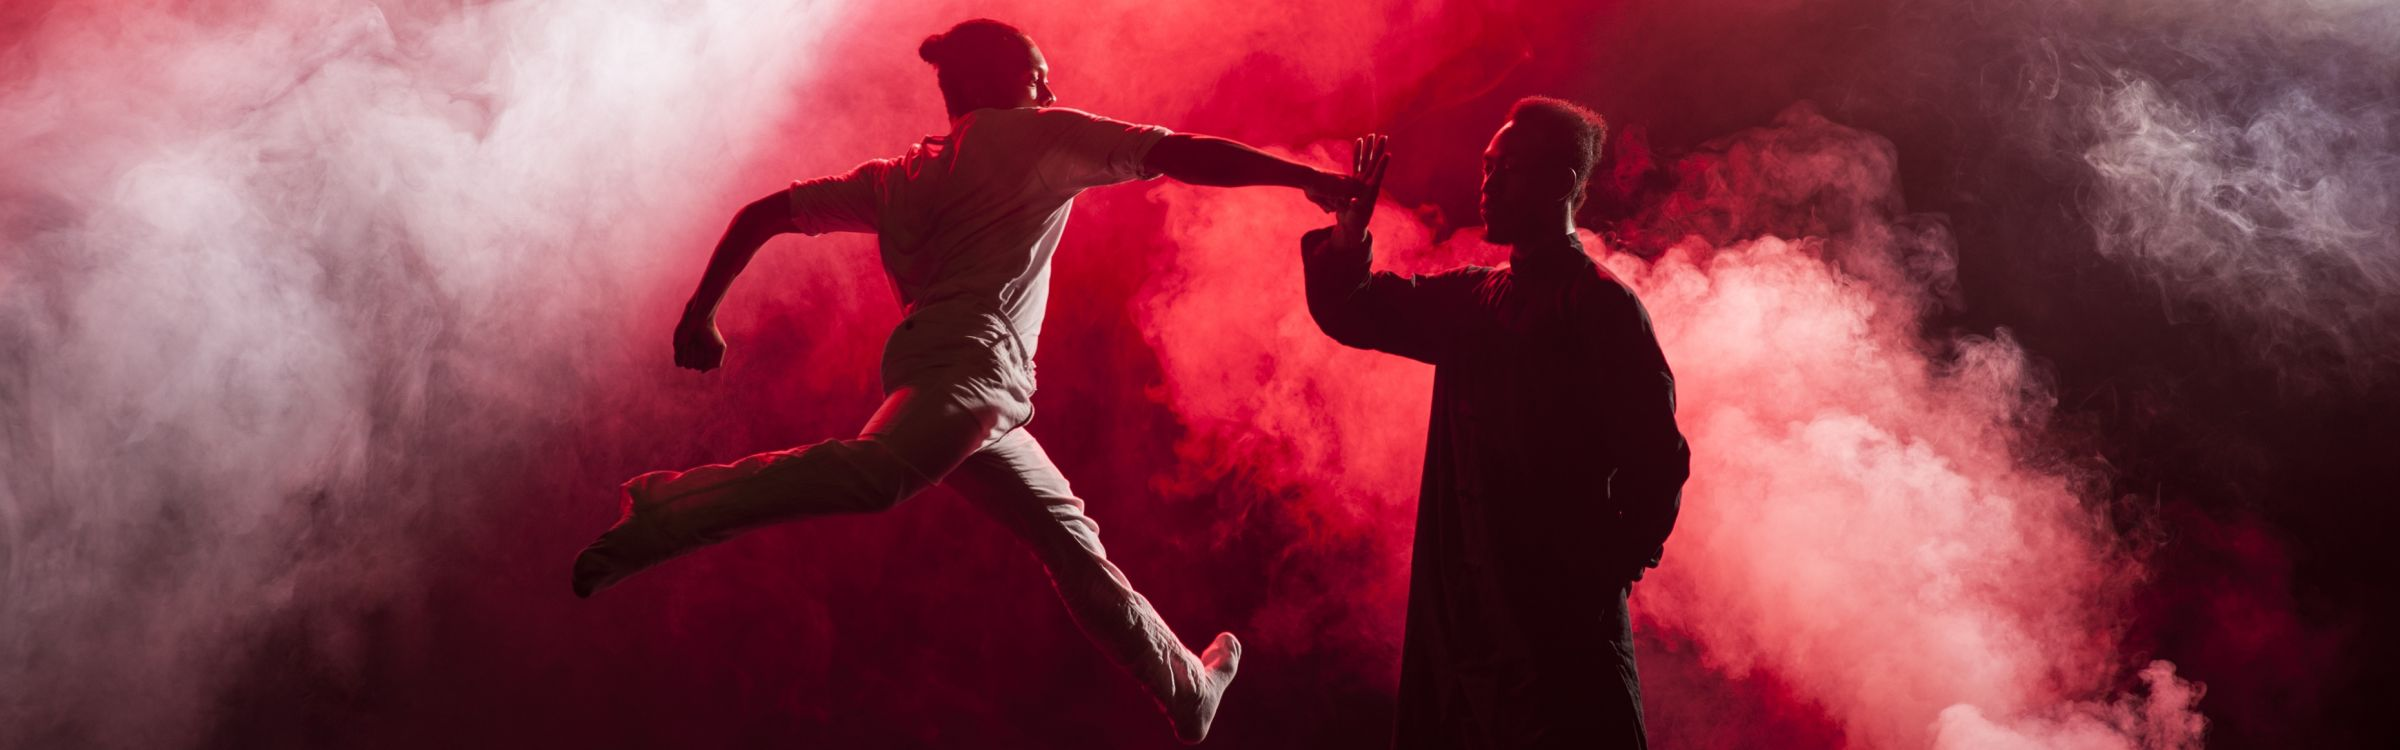 Two silhouetted dancers with a background of red smoke